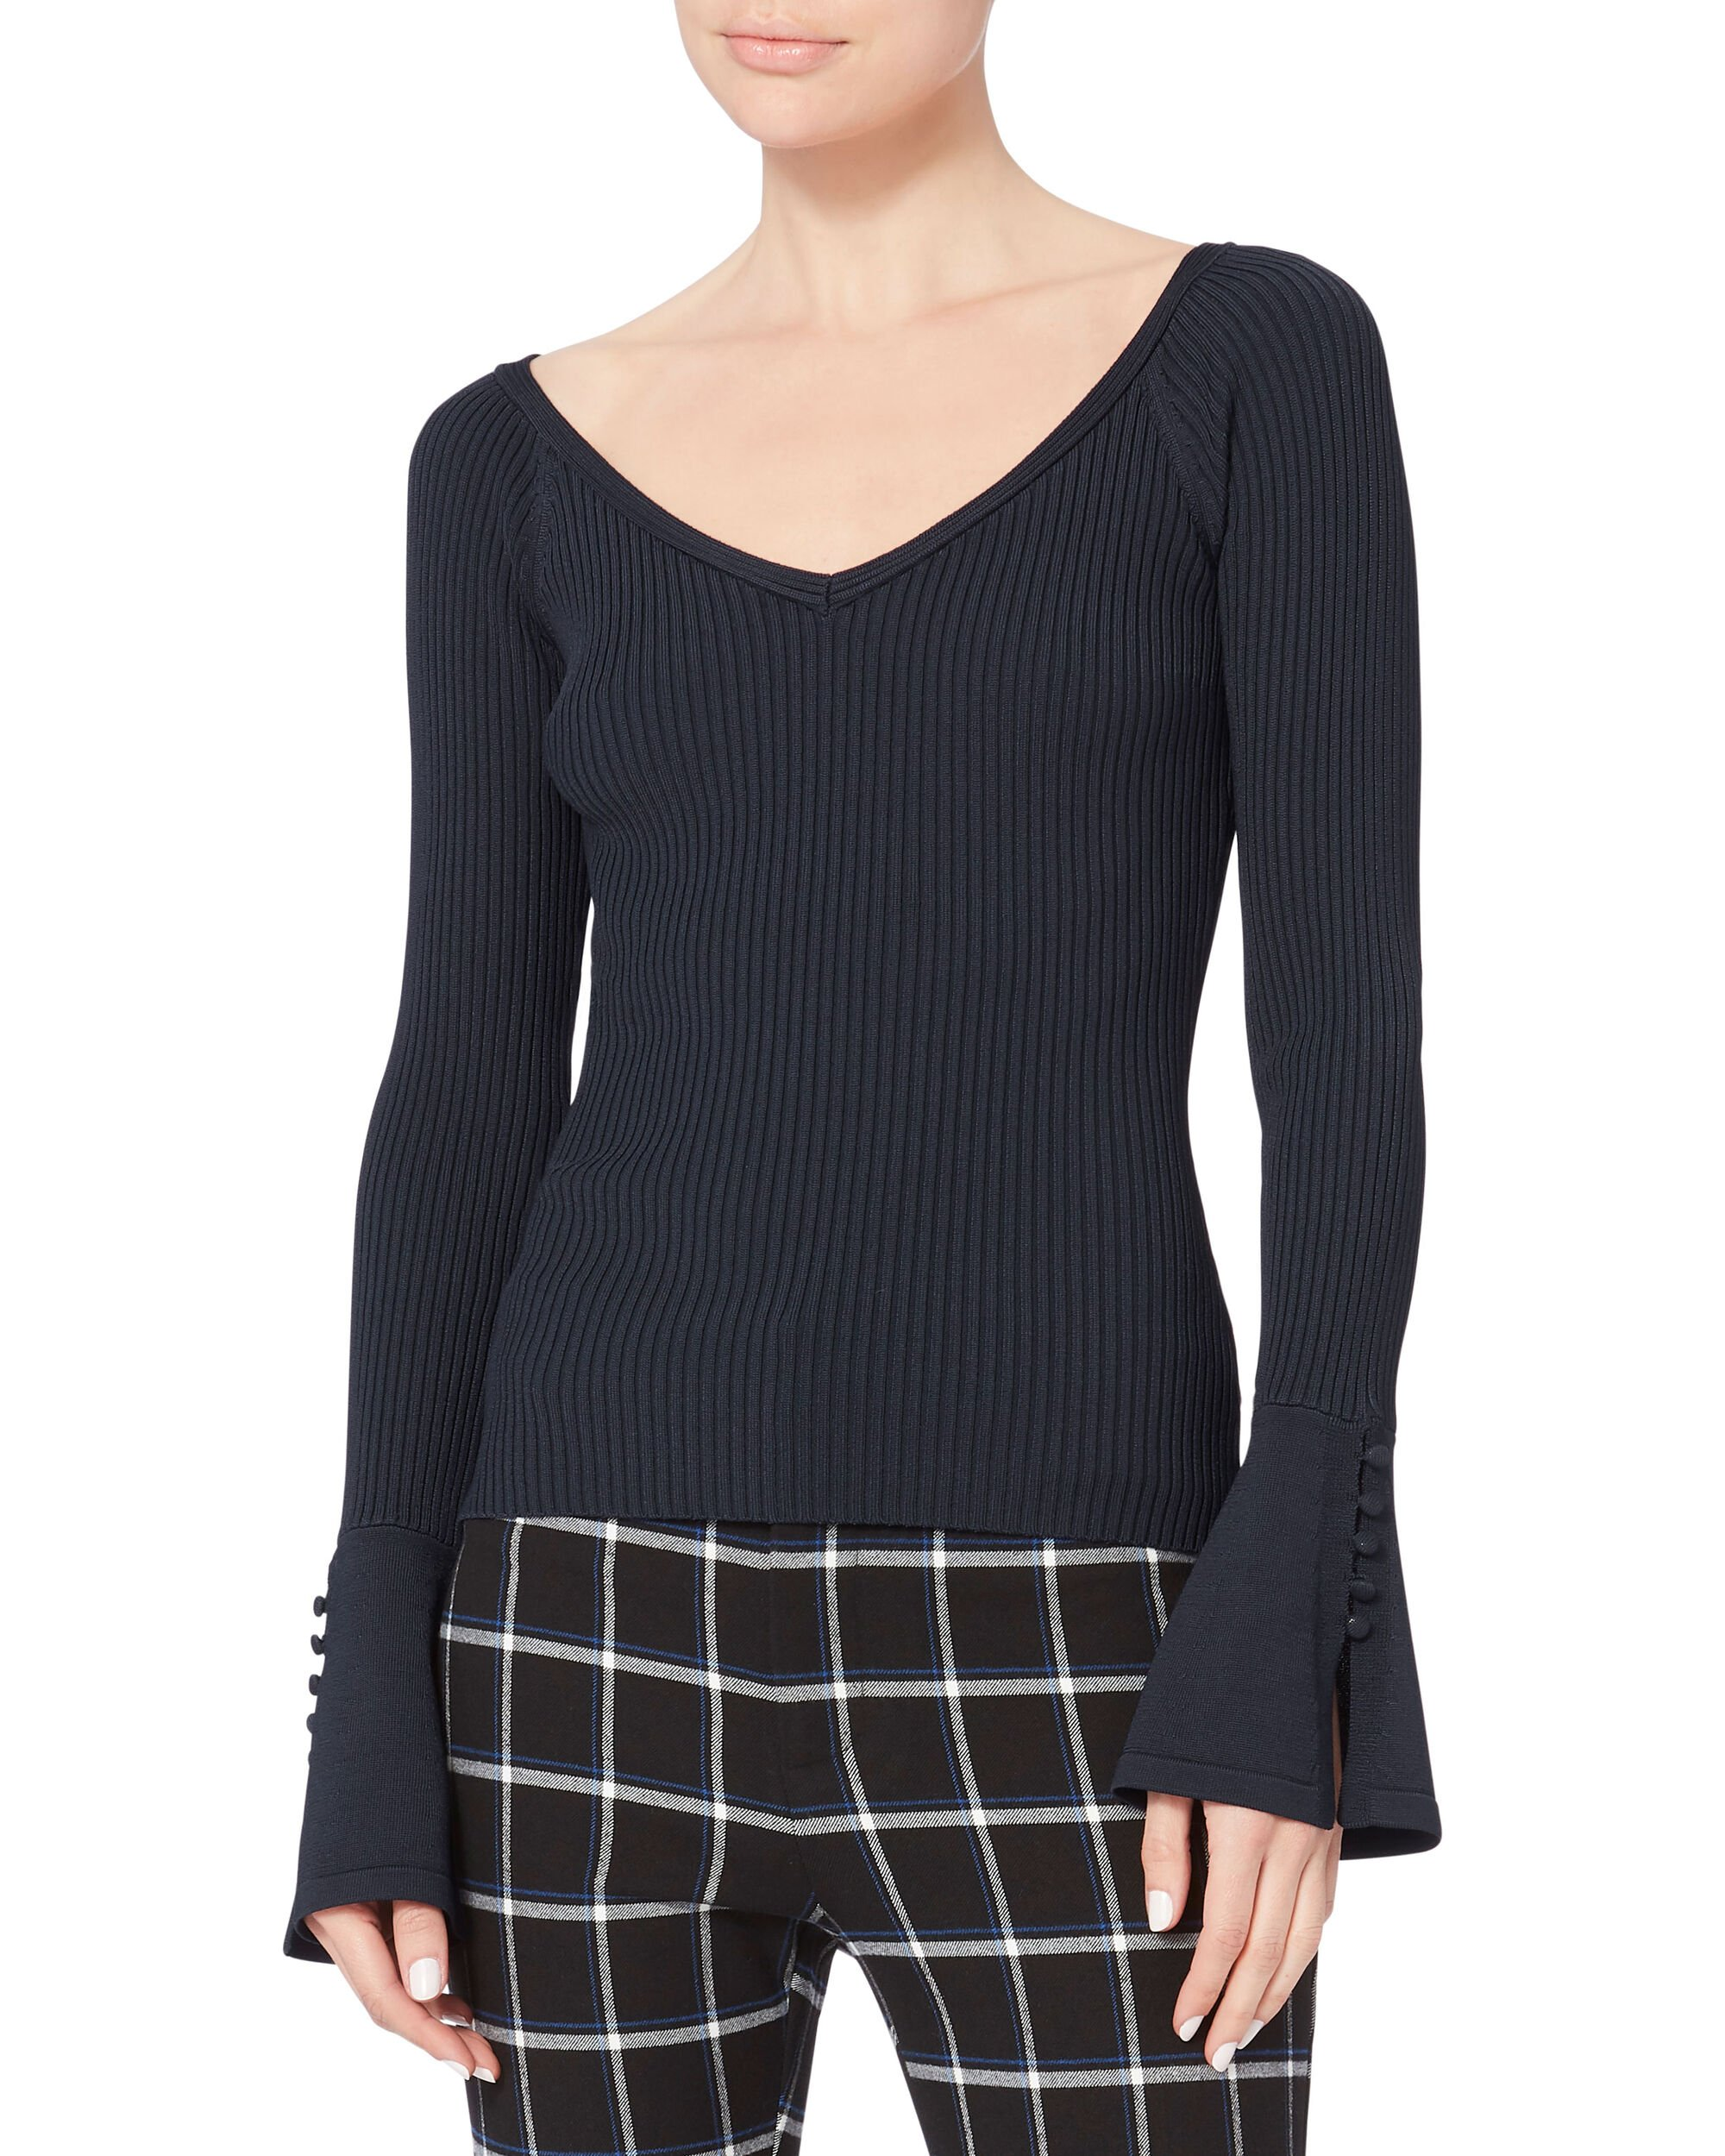 Penny Knit Sweater, NAVY, hi-res